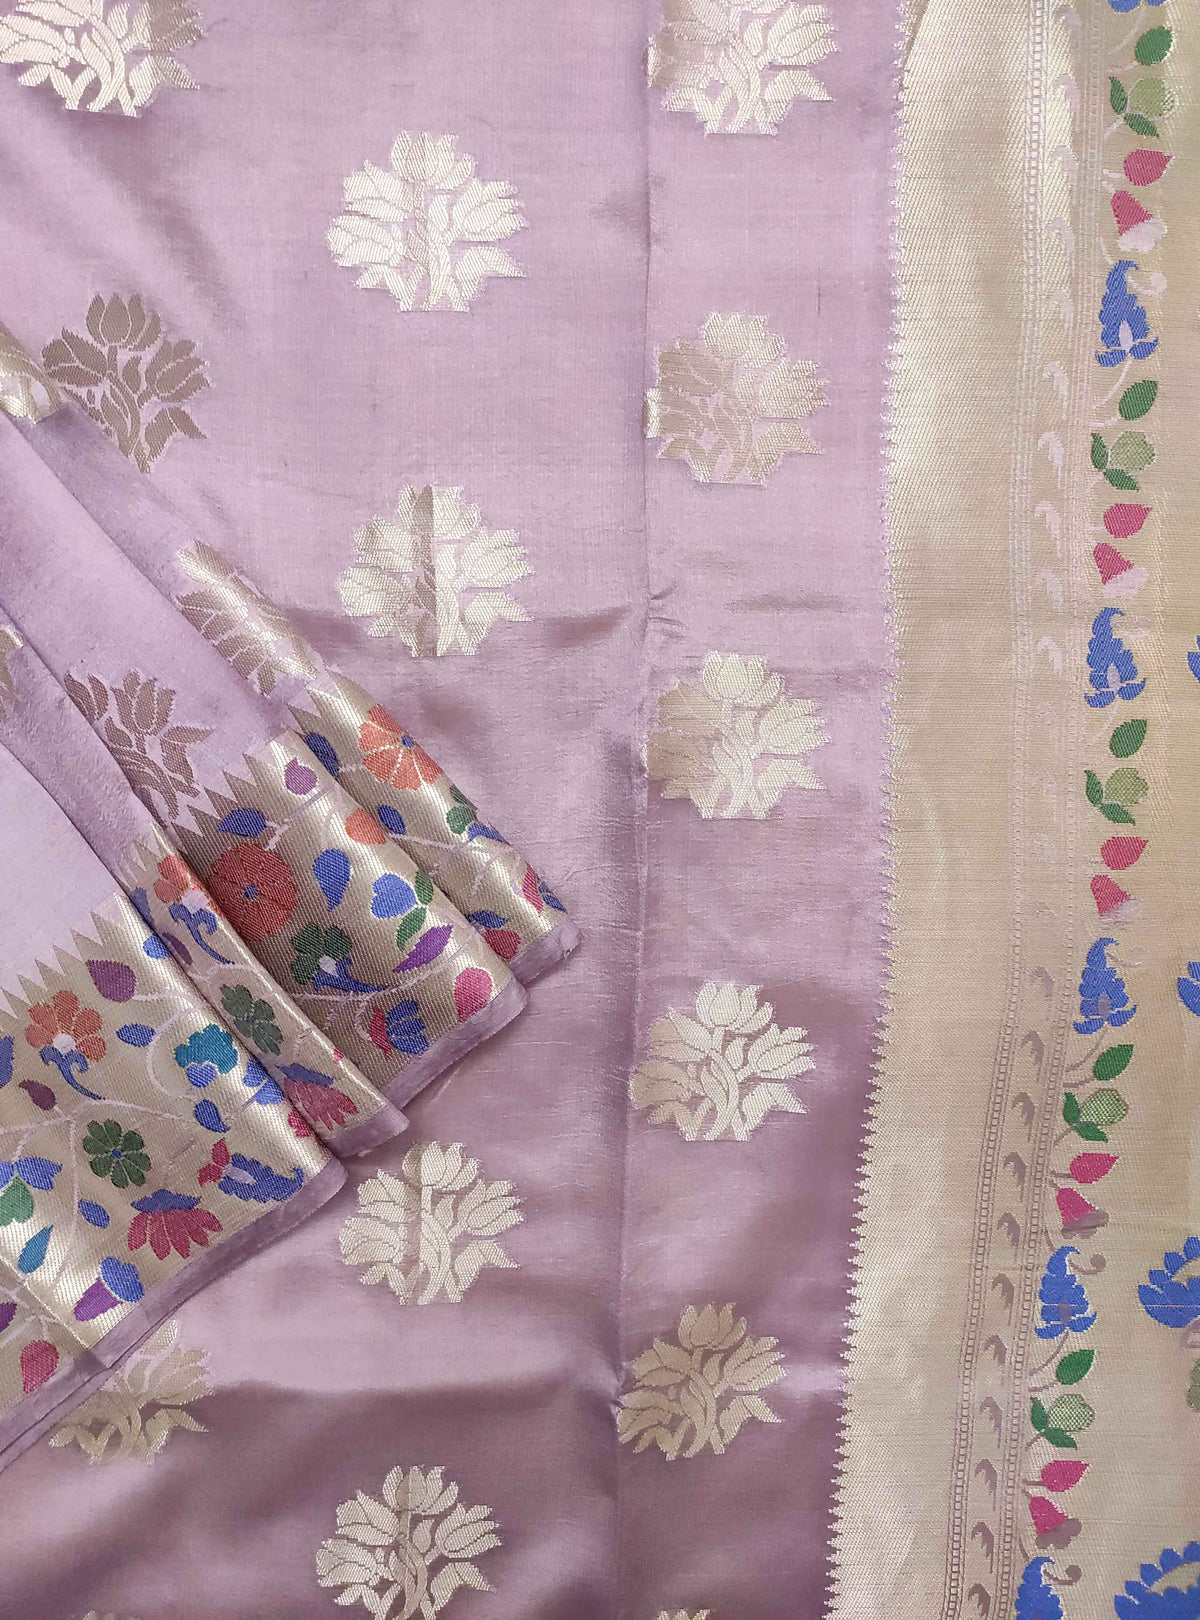 Lavender dupion silk Banarasi saree with flower boota and meenedar border (2) Close up